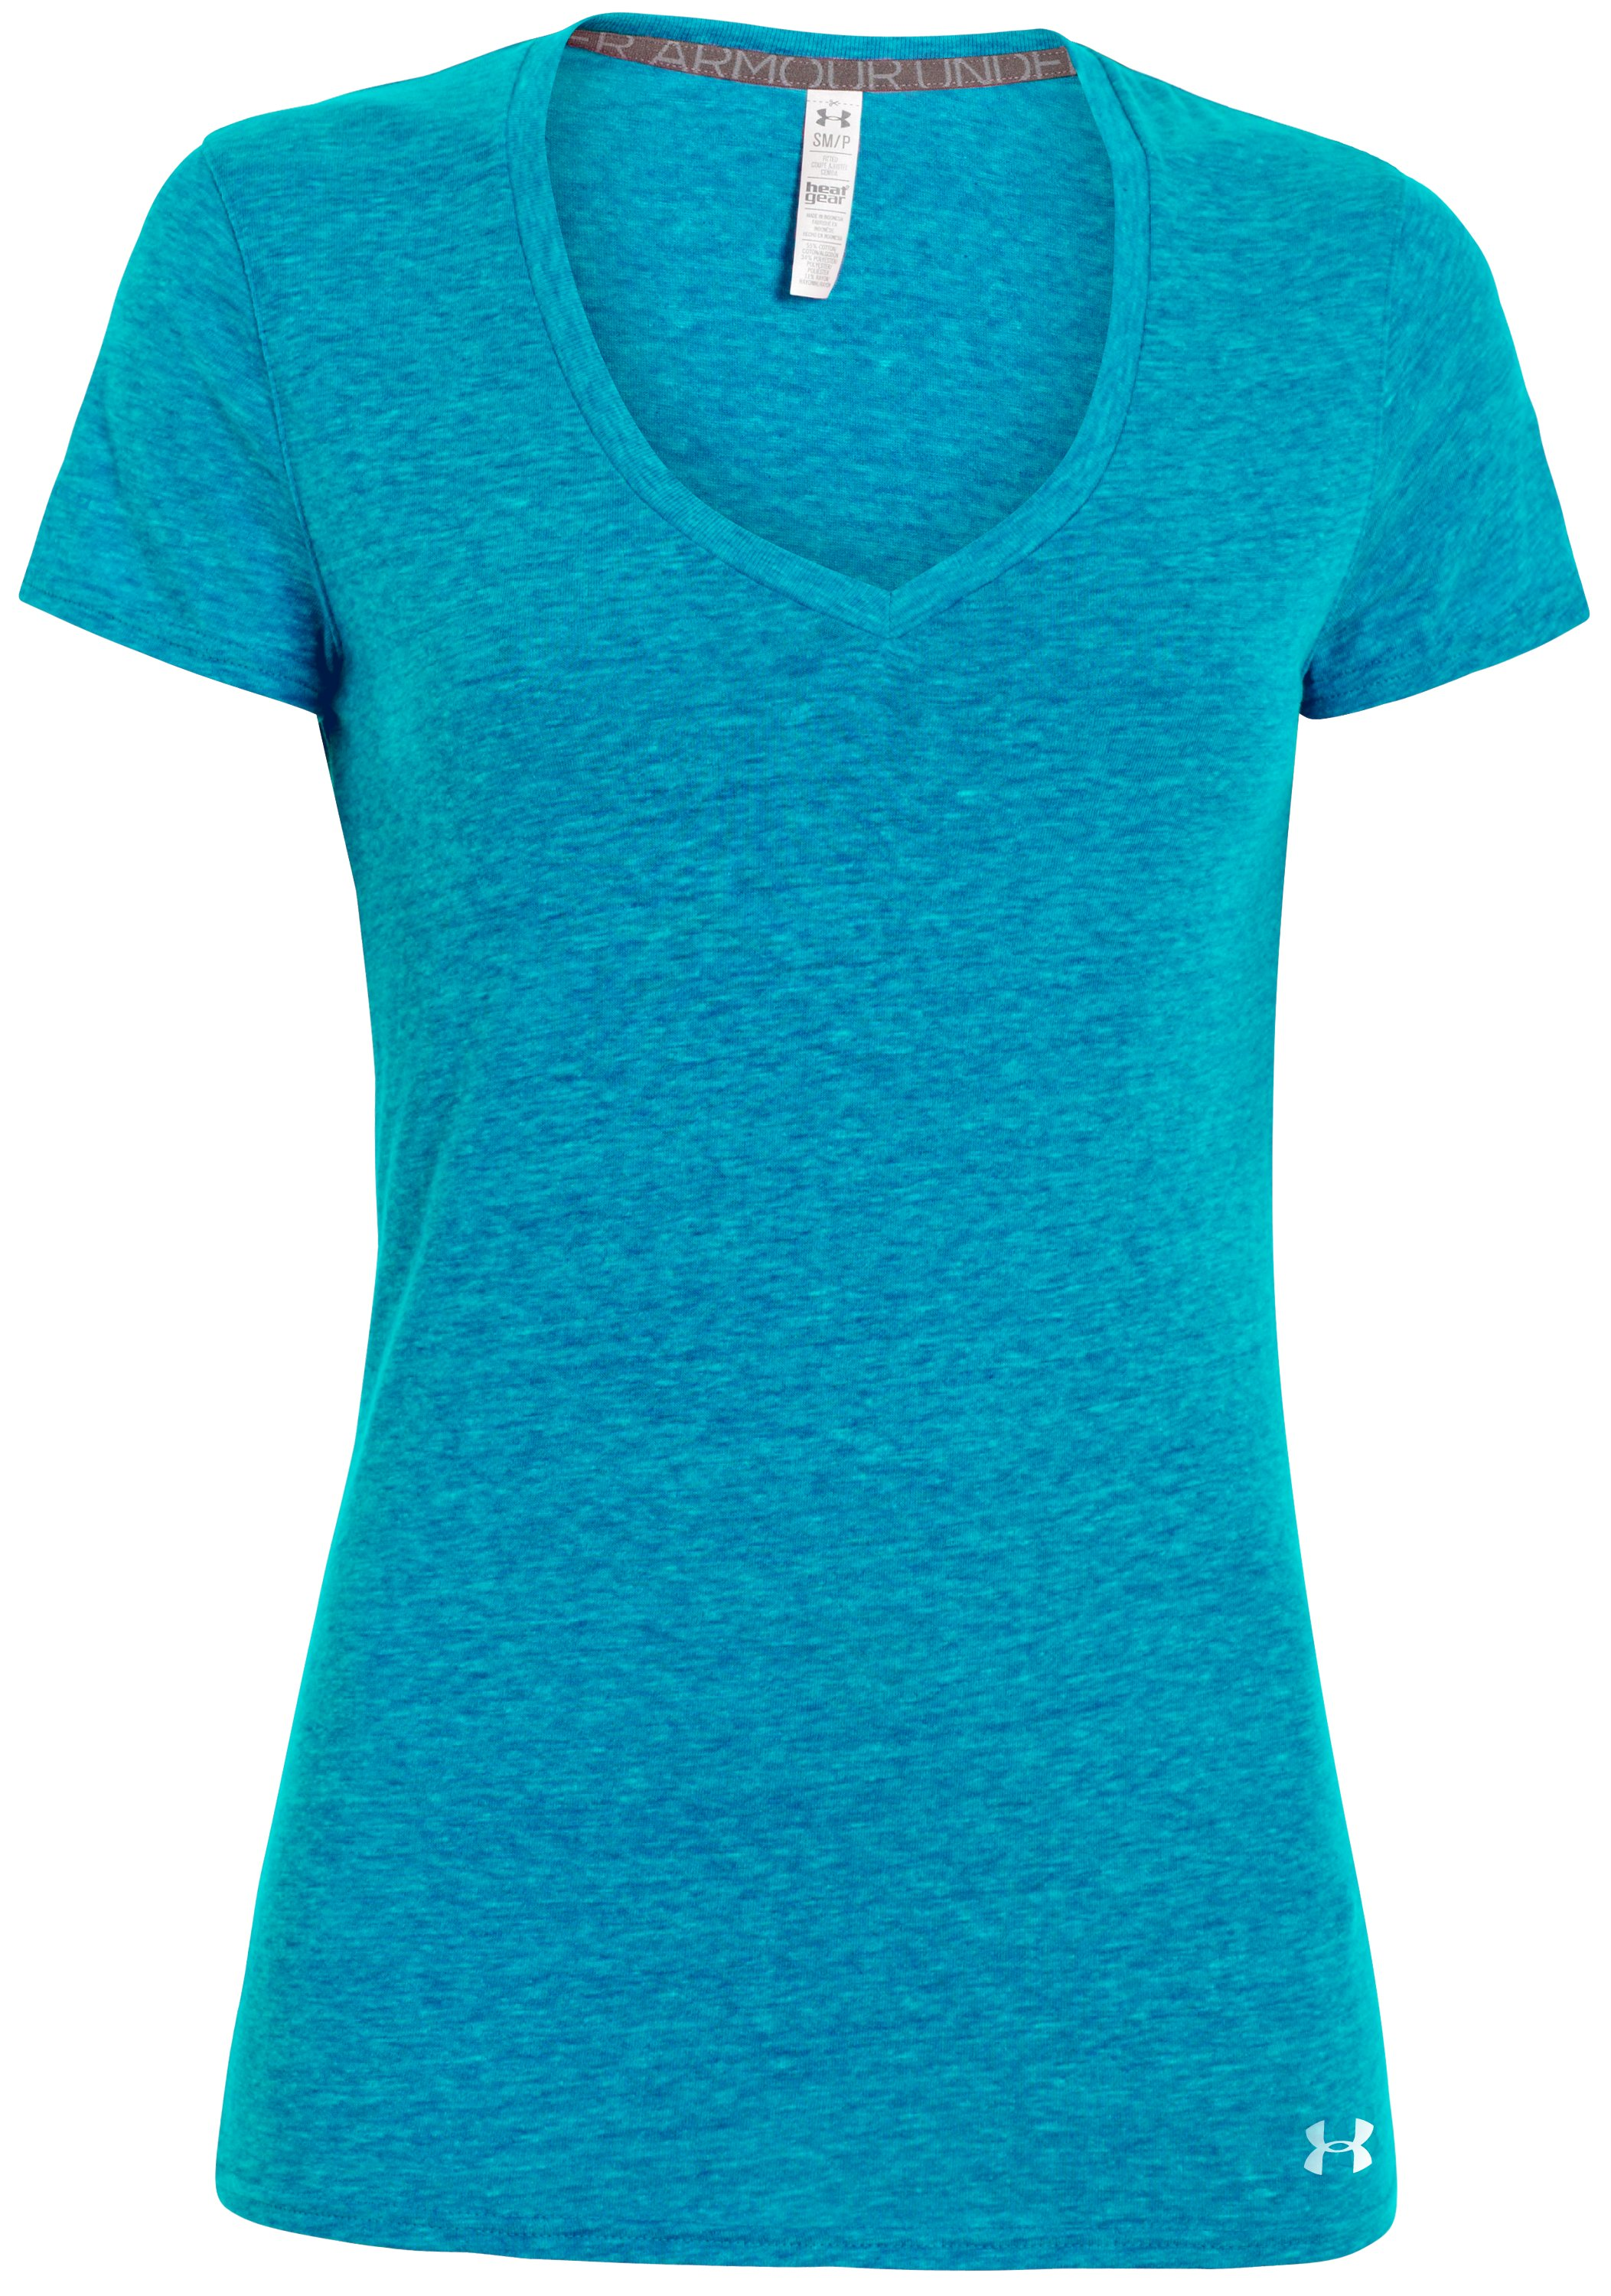 Women's Charged Cotton® Undeniable T-Shirt, Pacific, undefined